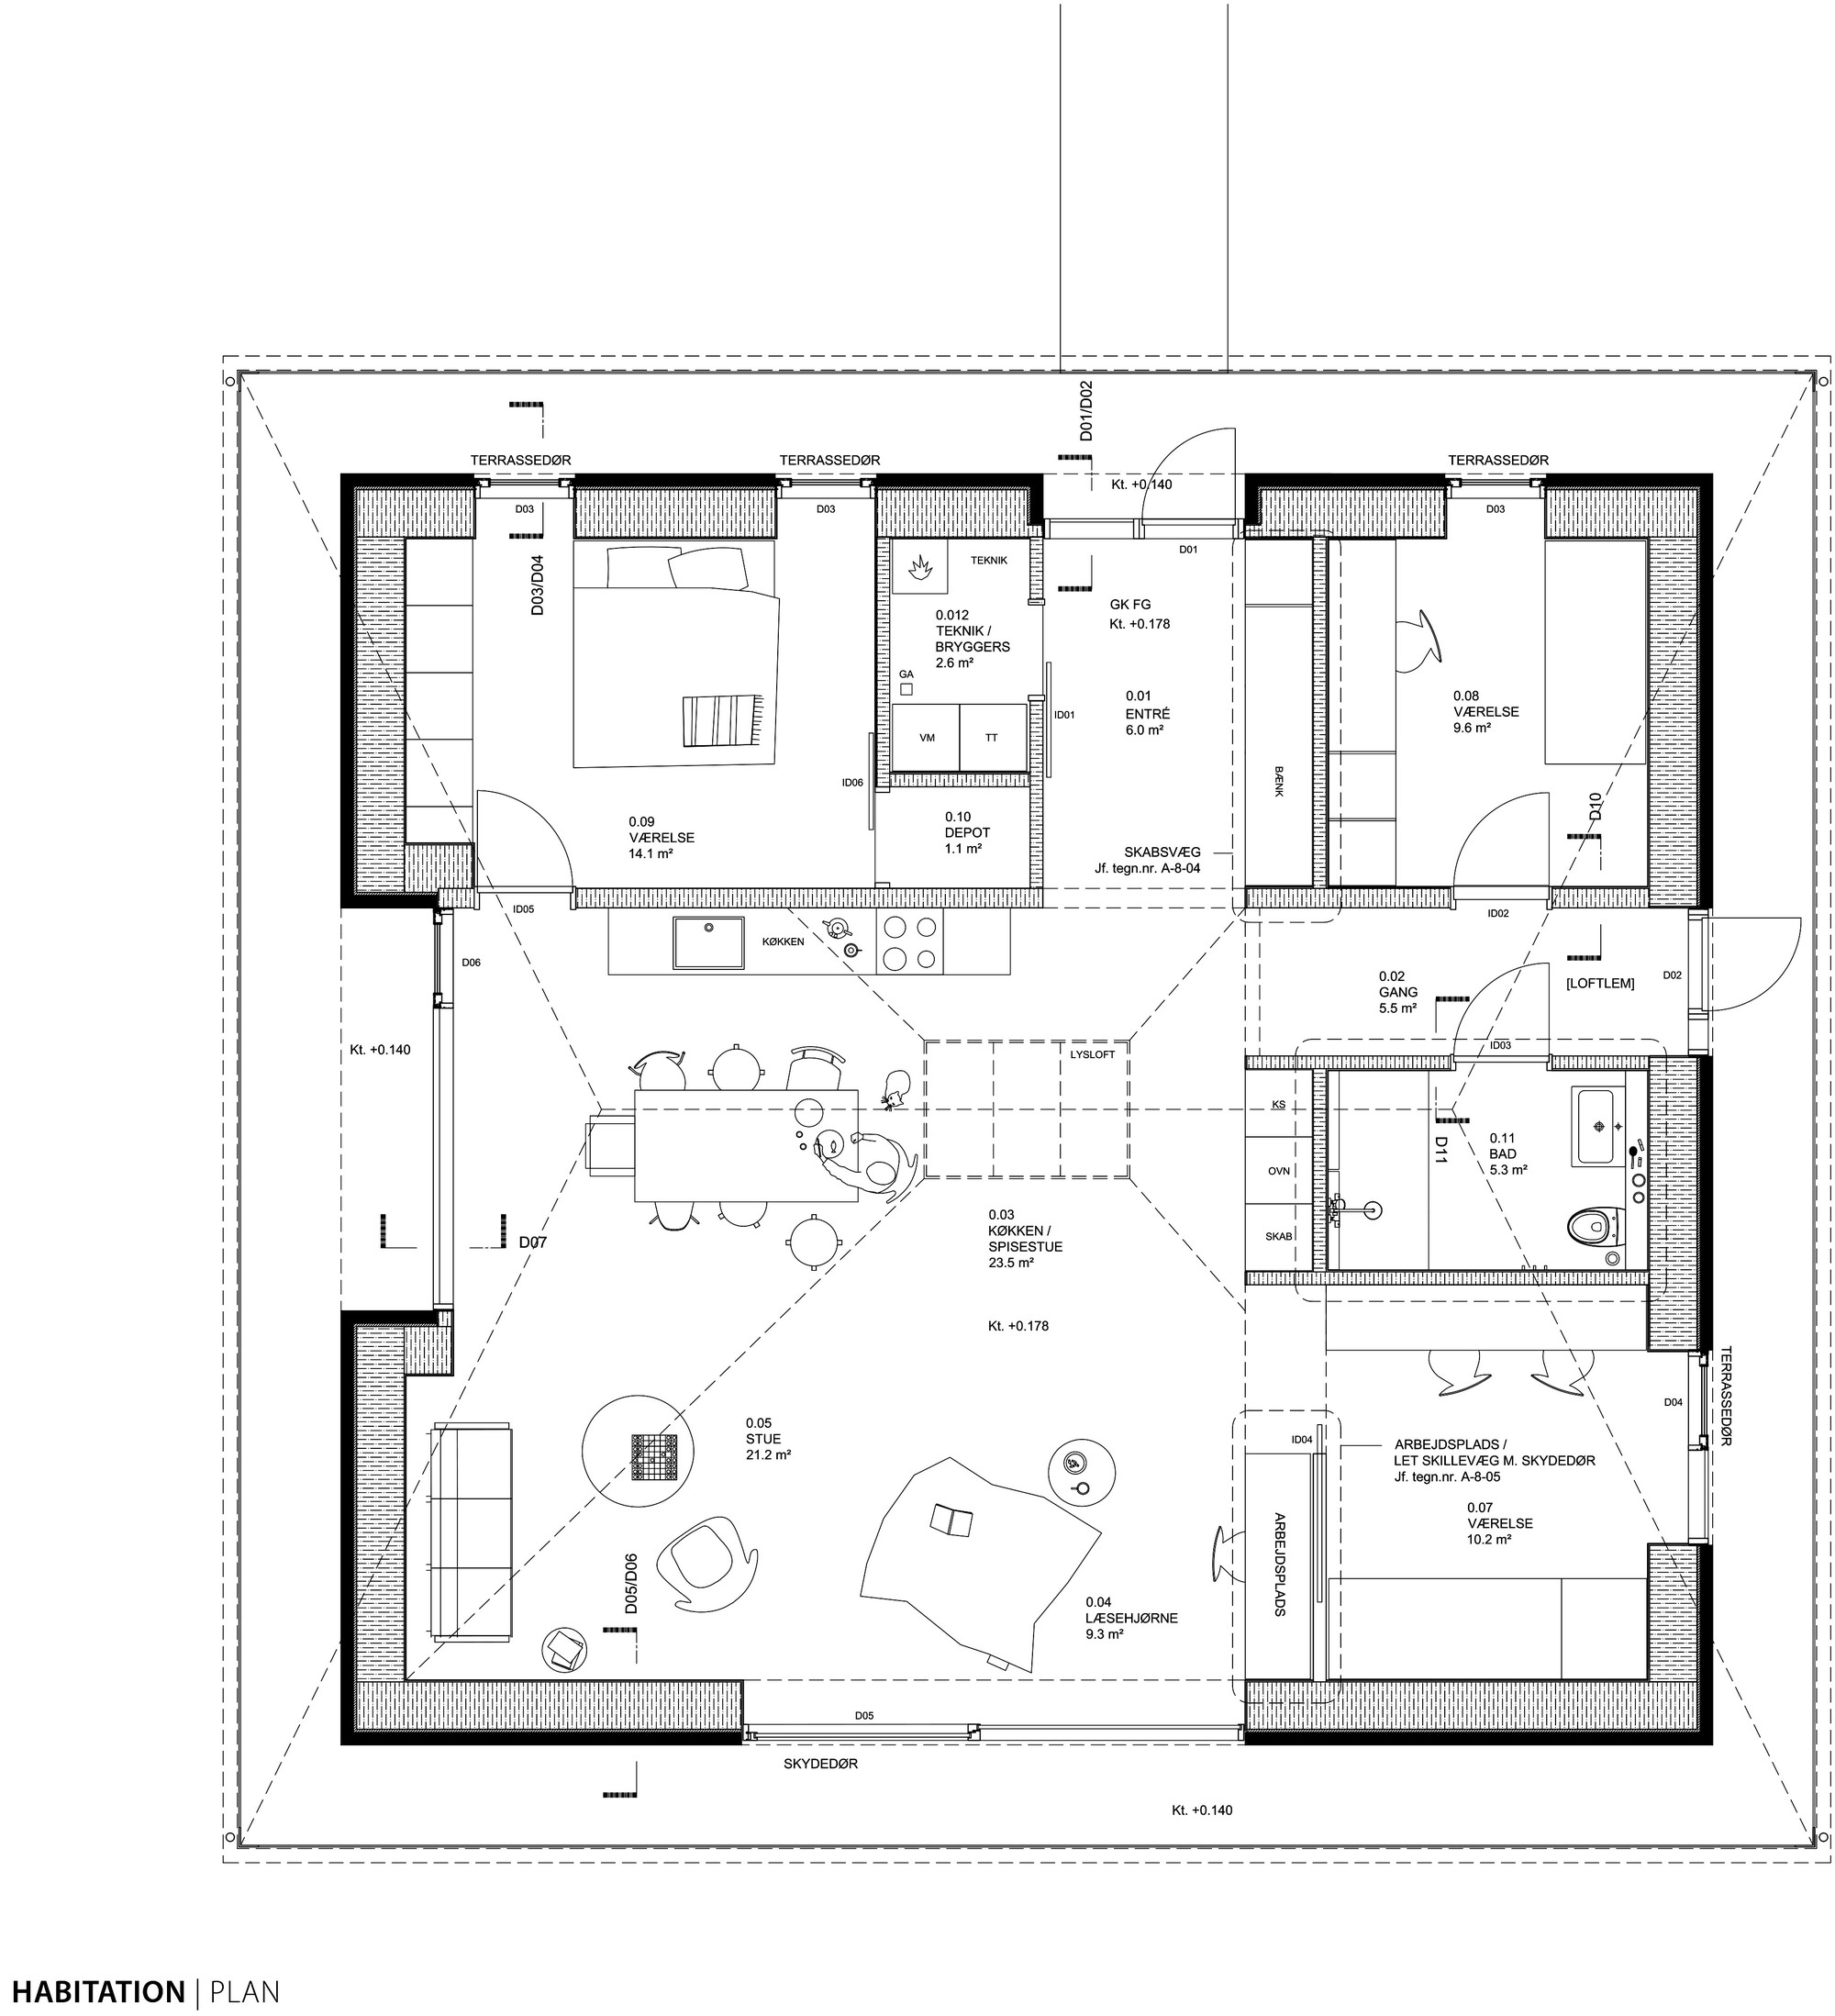 Free Small Cabin Plans as well Ex les together with Rose Gold Marble Custom Letter in addition Rectangle House Floor Plans Home Design Great Fancy And Rectangle House Floor Plans Design A Room additionally Perspective Drawings Of A Modern House. on bedroom layout